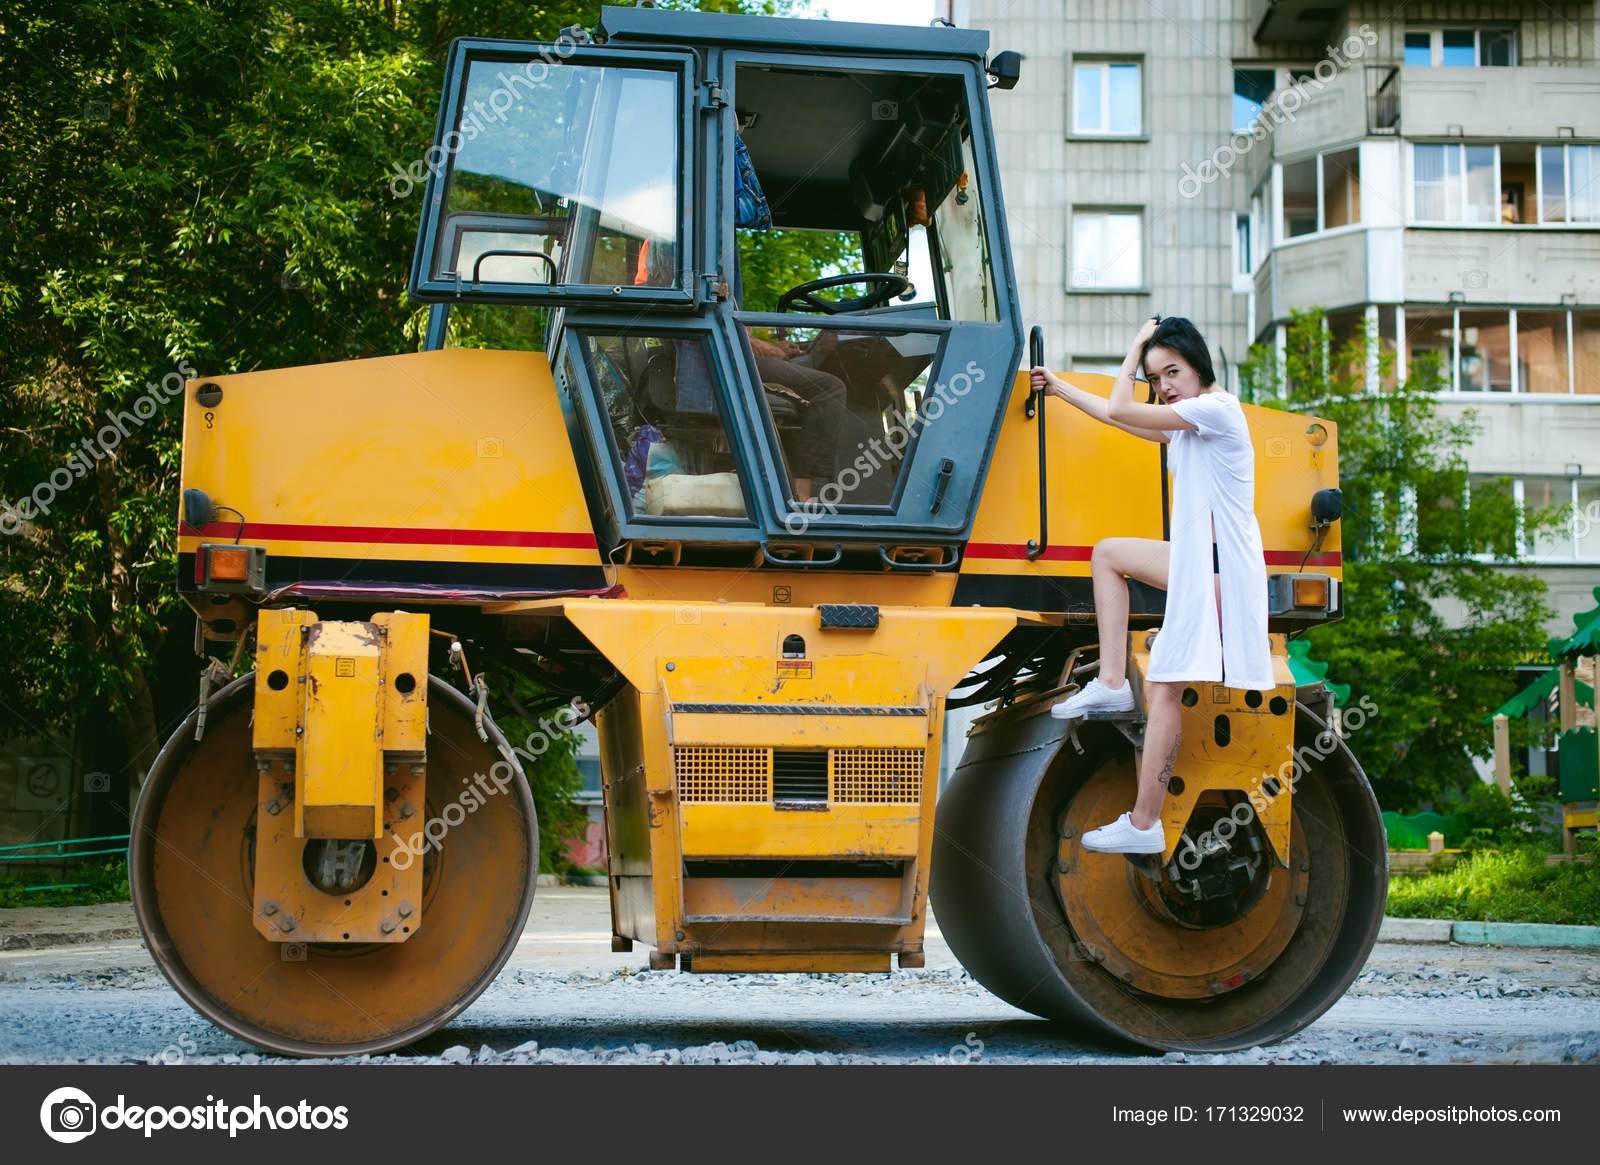 Young Woman With Bare Feet Dressed In White Sneakers And A Long Jersey Against A Backdrop Of Urban Landscapes And Road Machinery Asphalt Paver